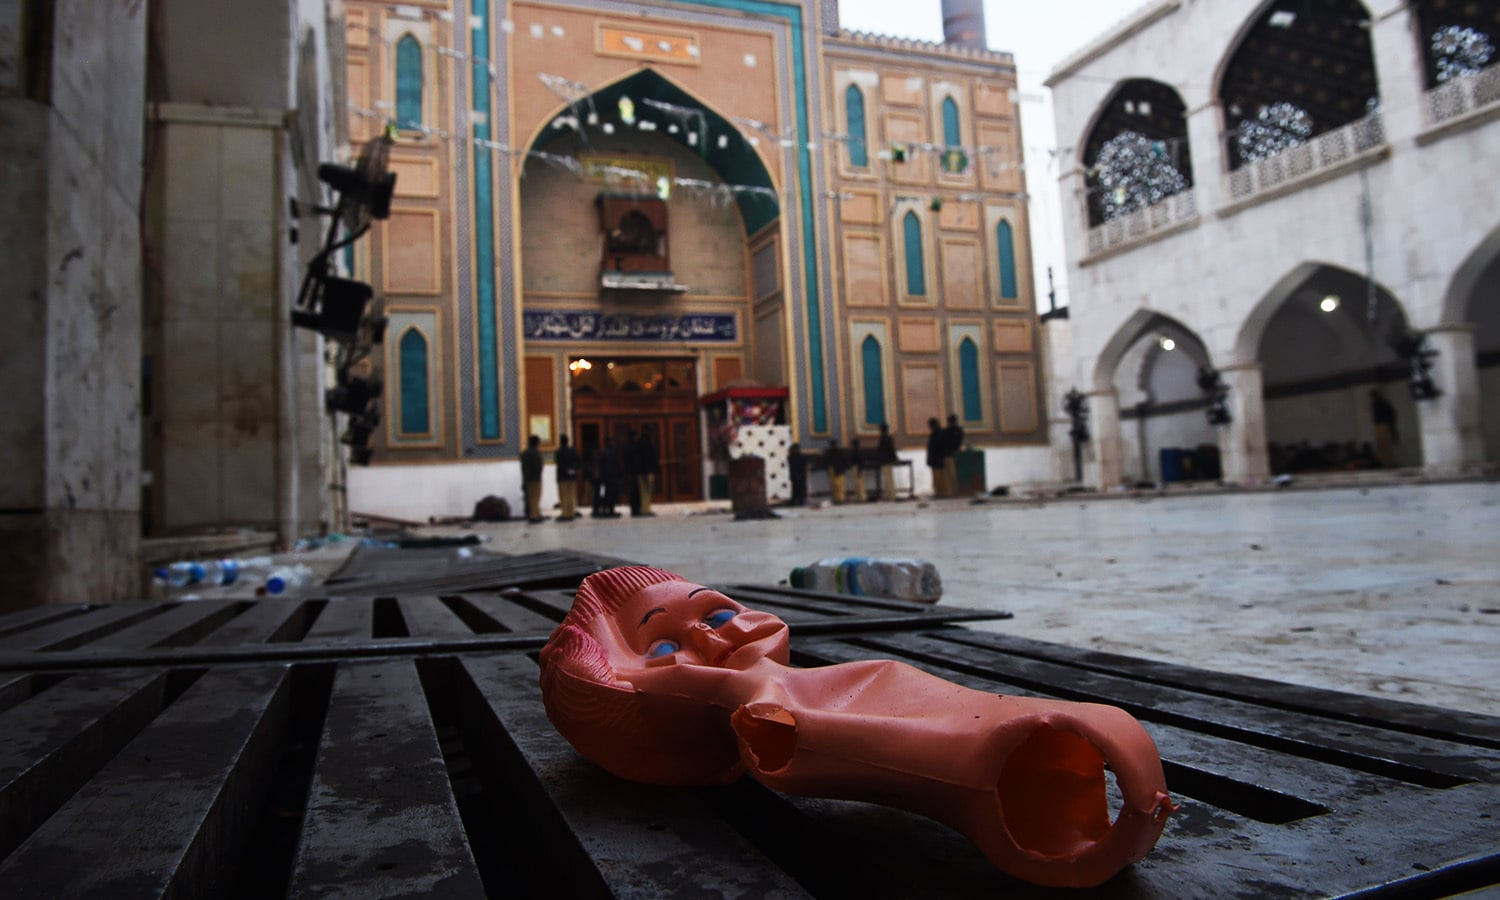 A doll lies on the ground of in the premises of the 13th century Muslim Sufi shrine of Lal Shahbaz Qalandar following the attack. ─AFP